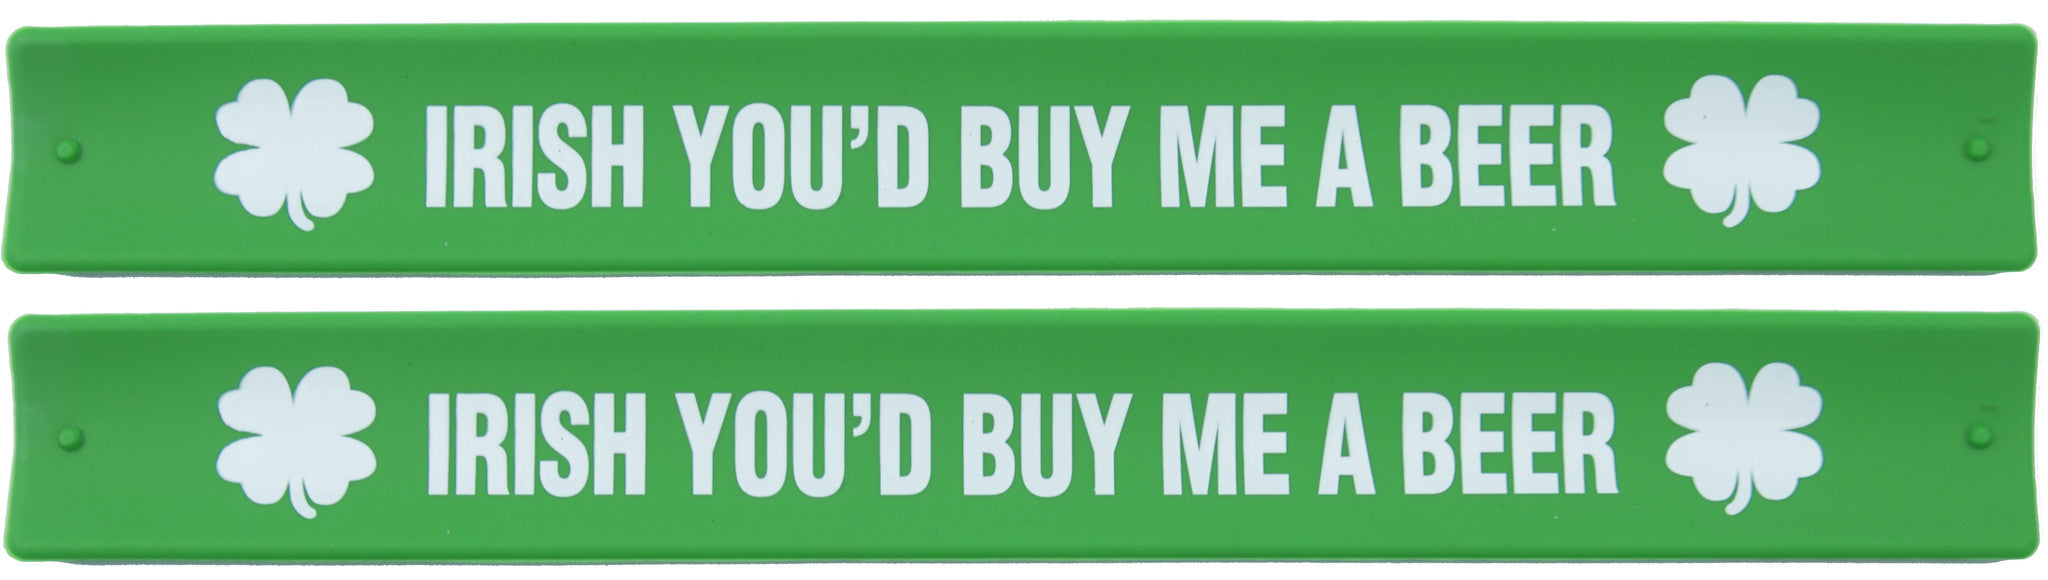 St Patricks Day Slap Bands - Irish You'd Buy Me A Beer